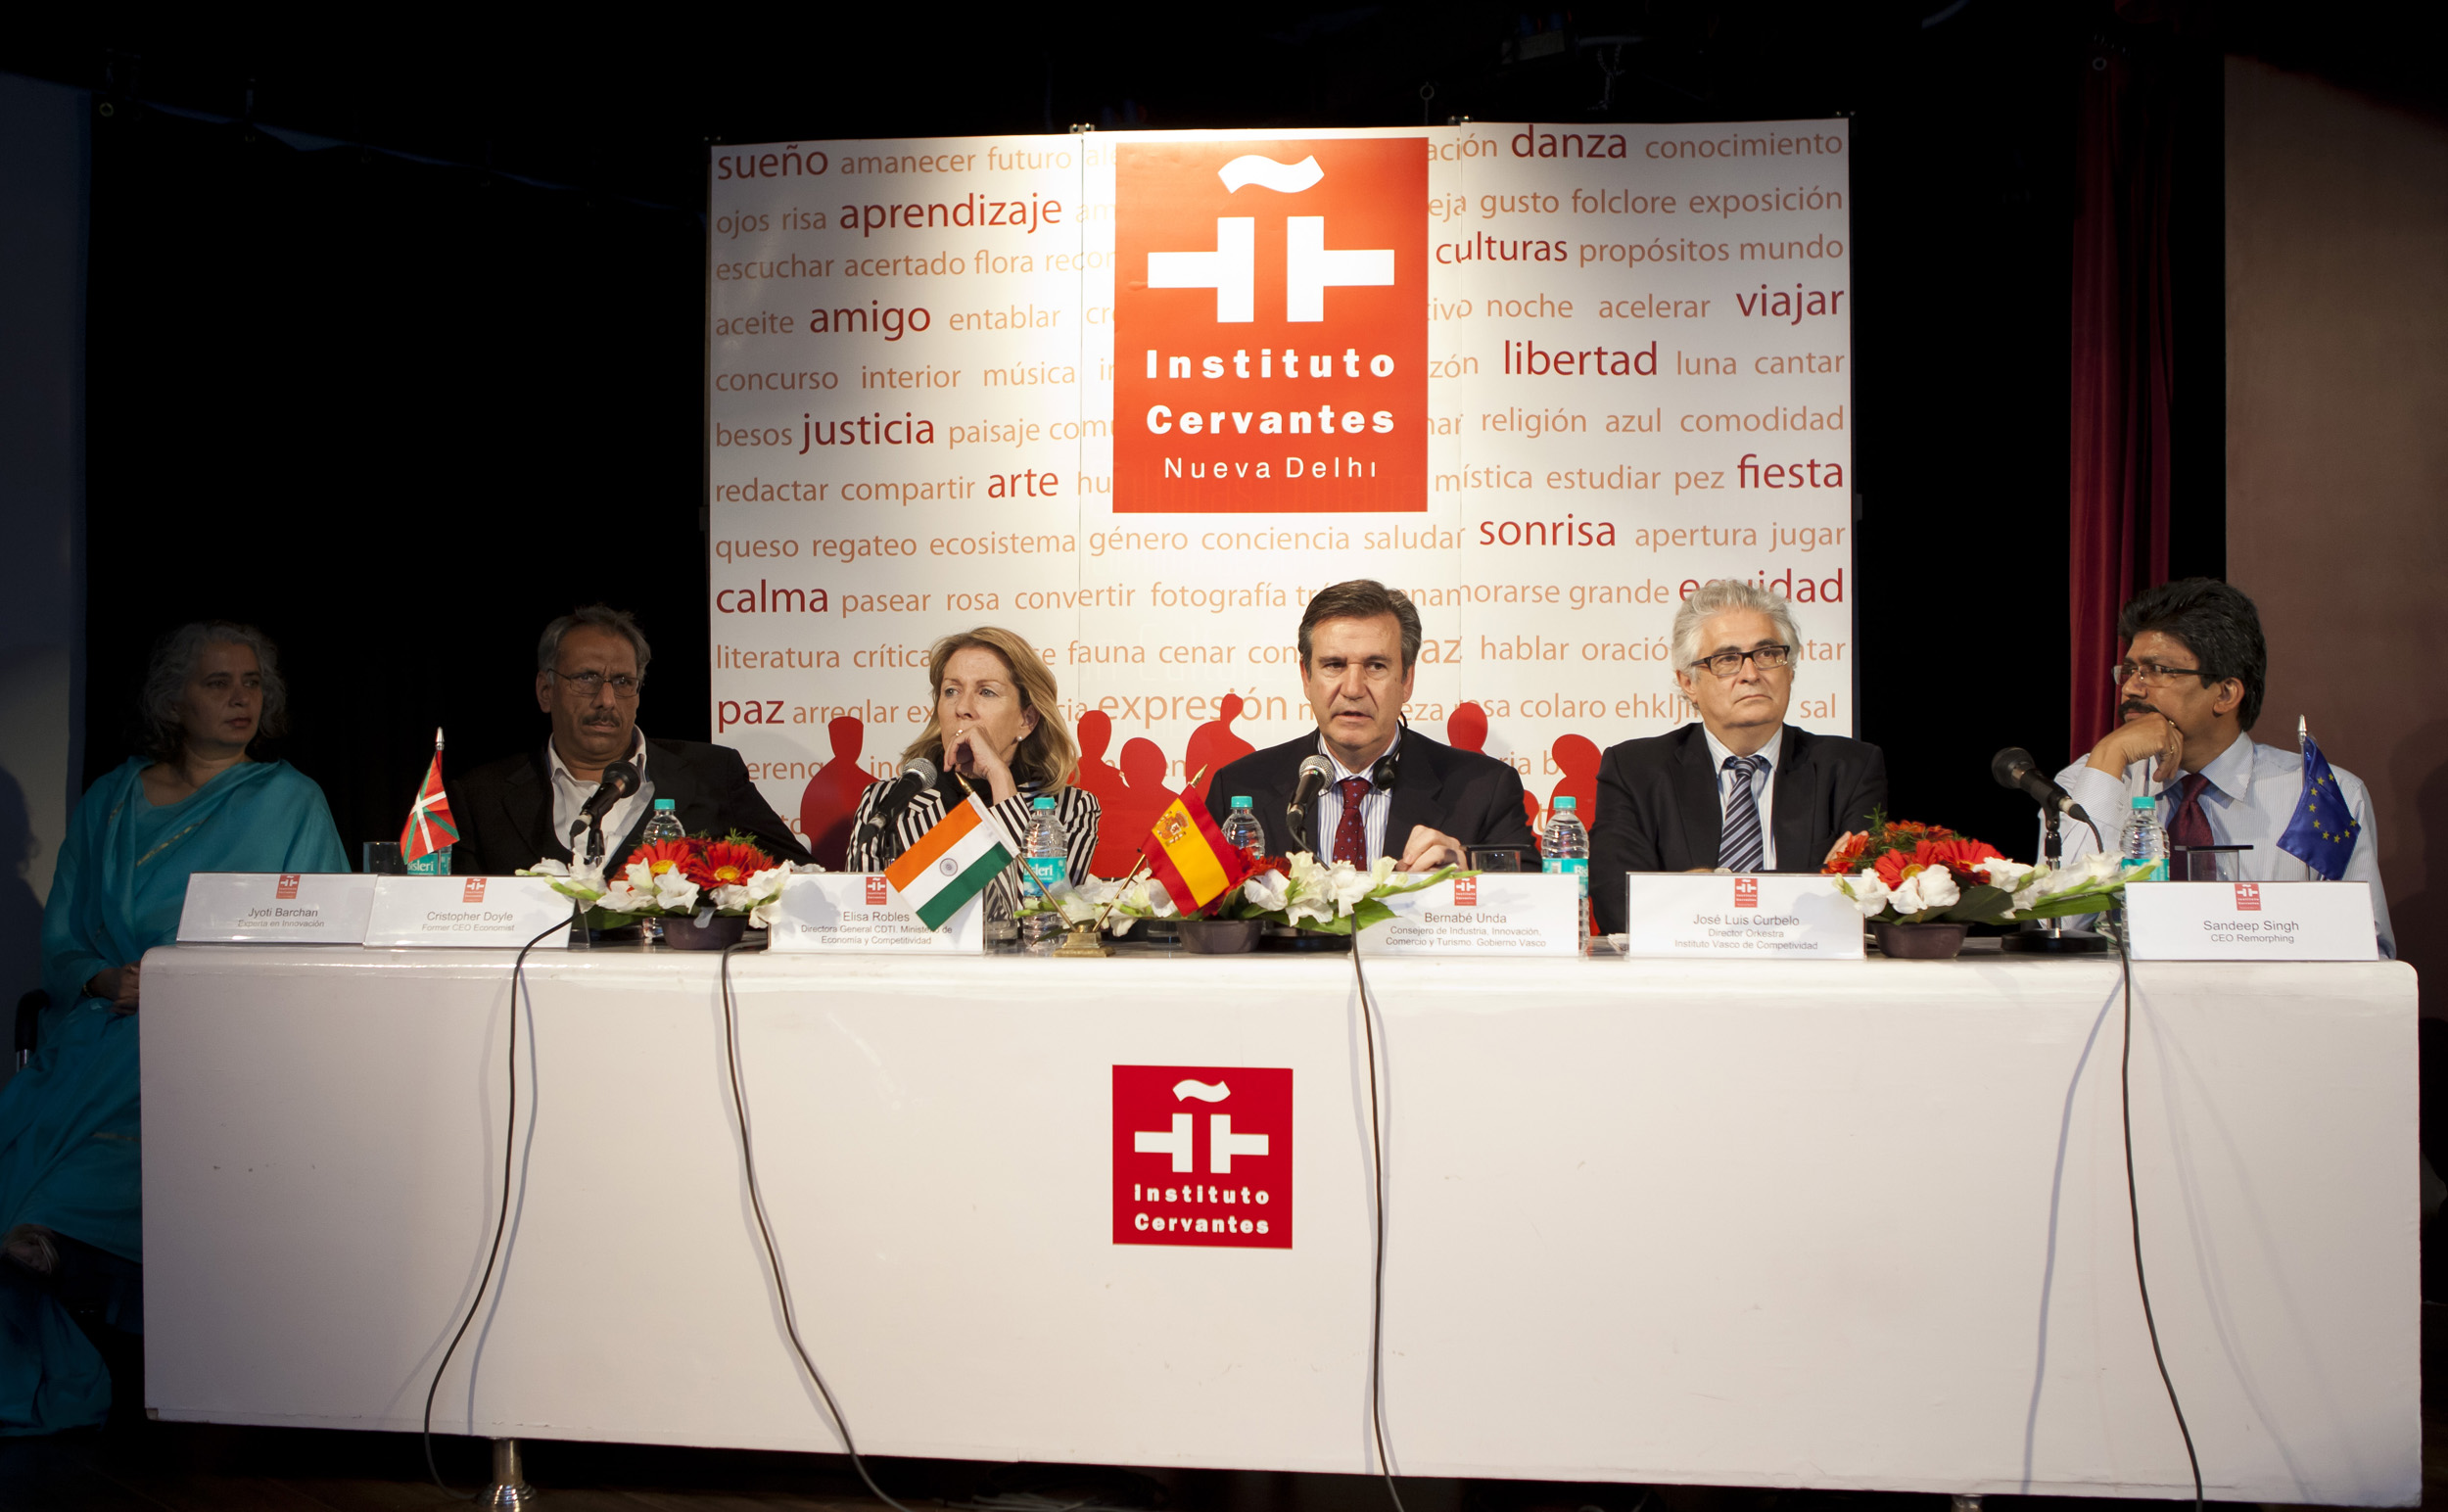 2012_03_21_jornadas8.jpg